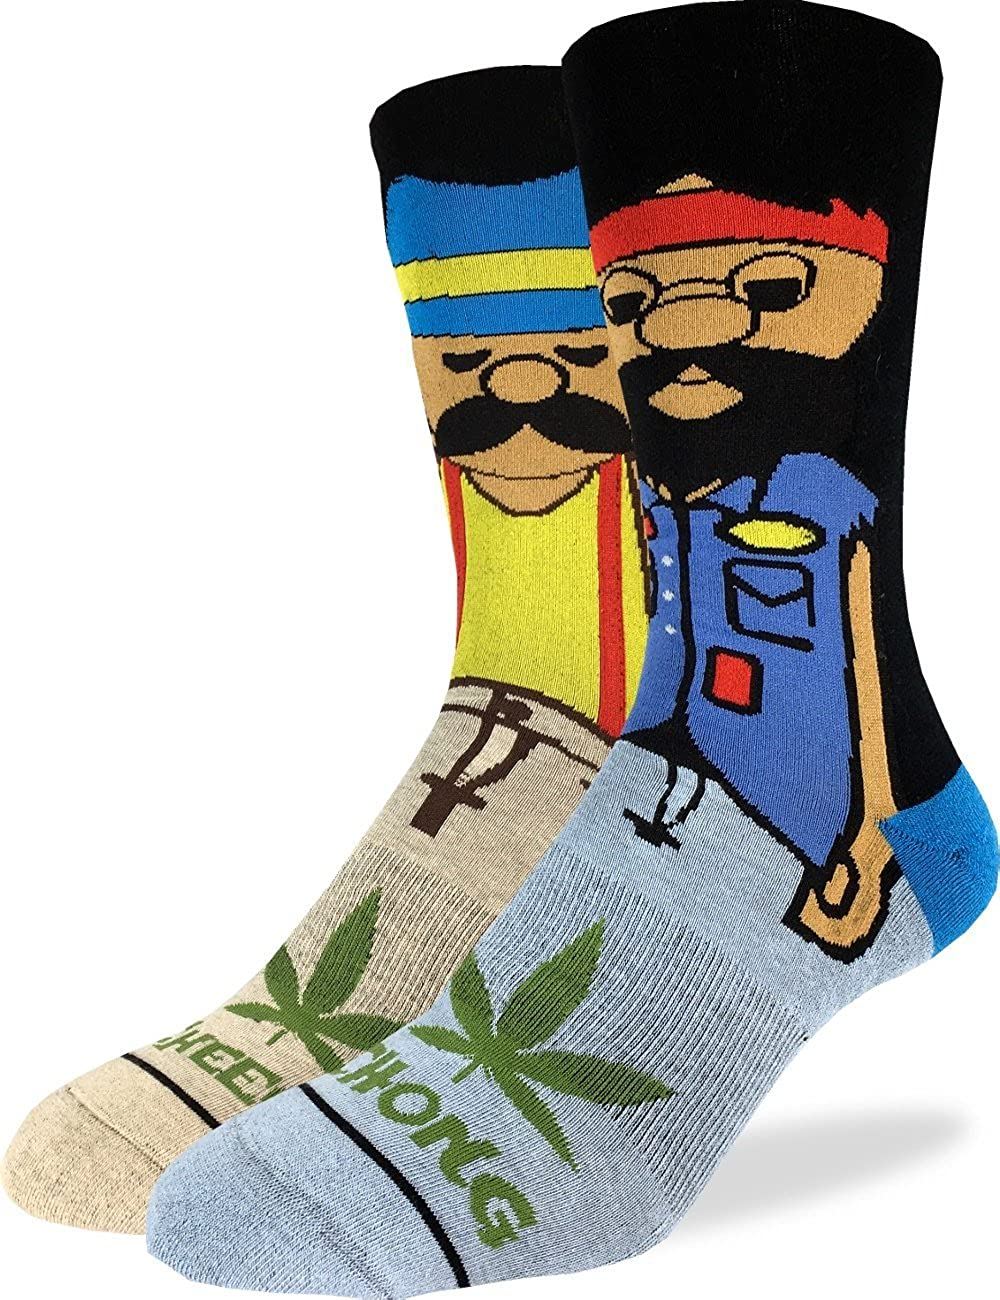 Good Luck Sock Men's Cheech & Chong Crew Socks - Shoe Size 8-13